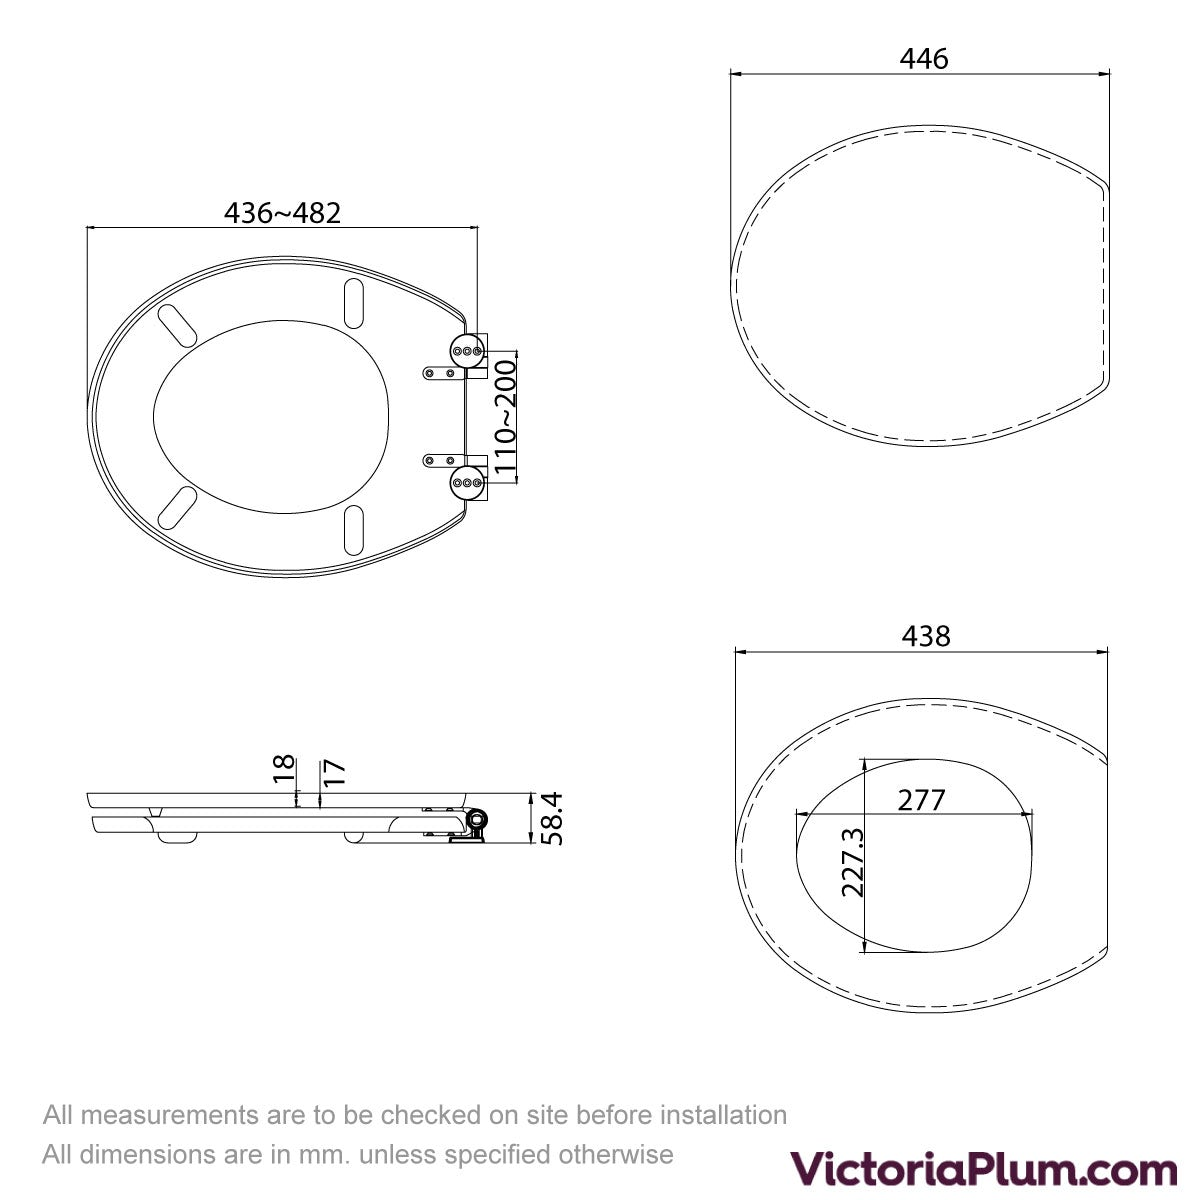 Dimensions for Blue shell acrylic toilet seat with soft close quick release hinge